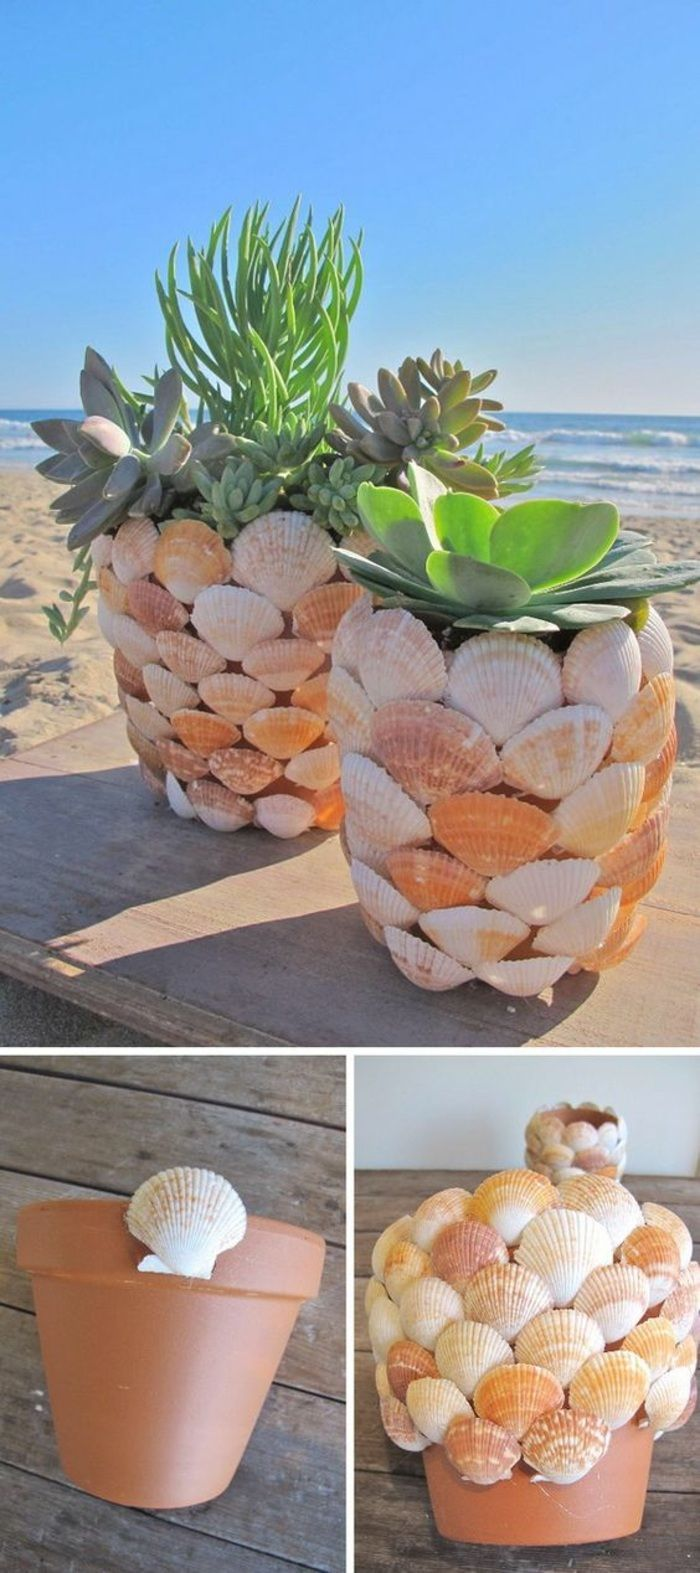 Cool Craft Ideas Maritime Decor Decorate Flower Pots With Shells